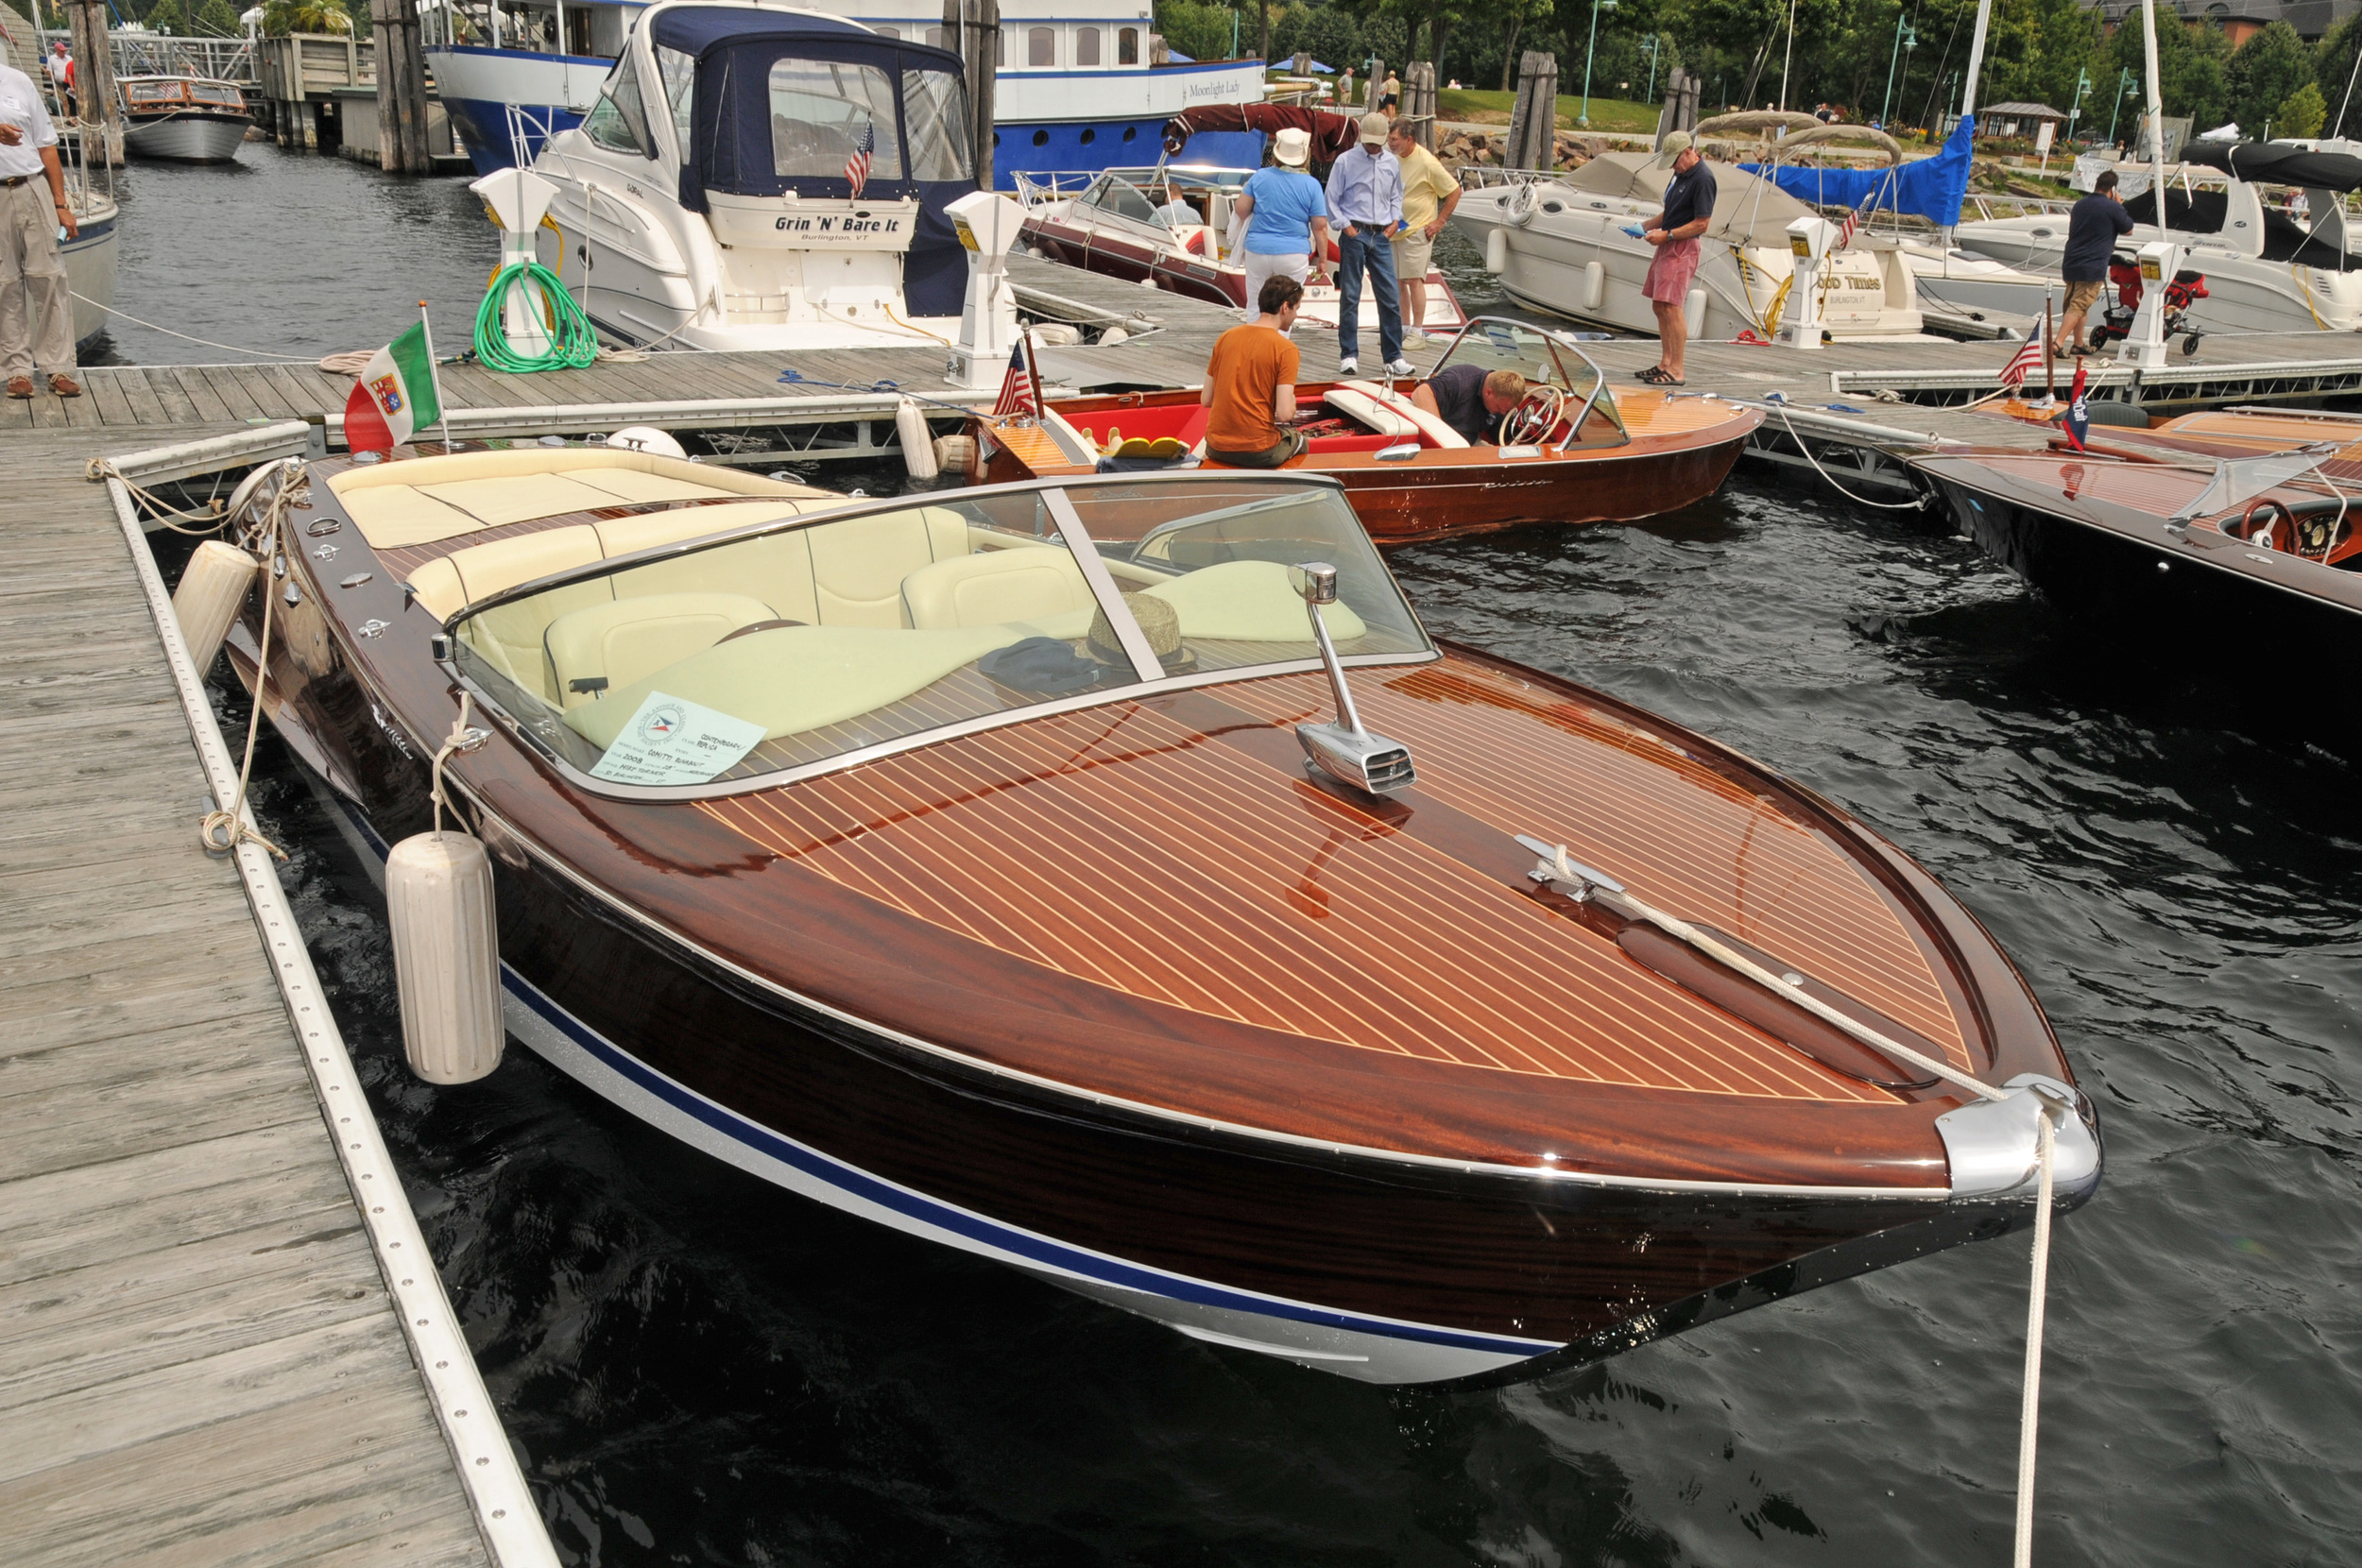 LCACBS HOME CONT 38 Boat Show Burlington 8 14 10 368.jpg